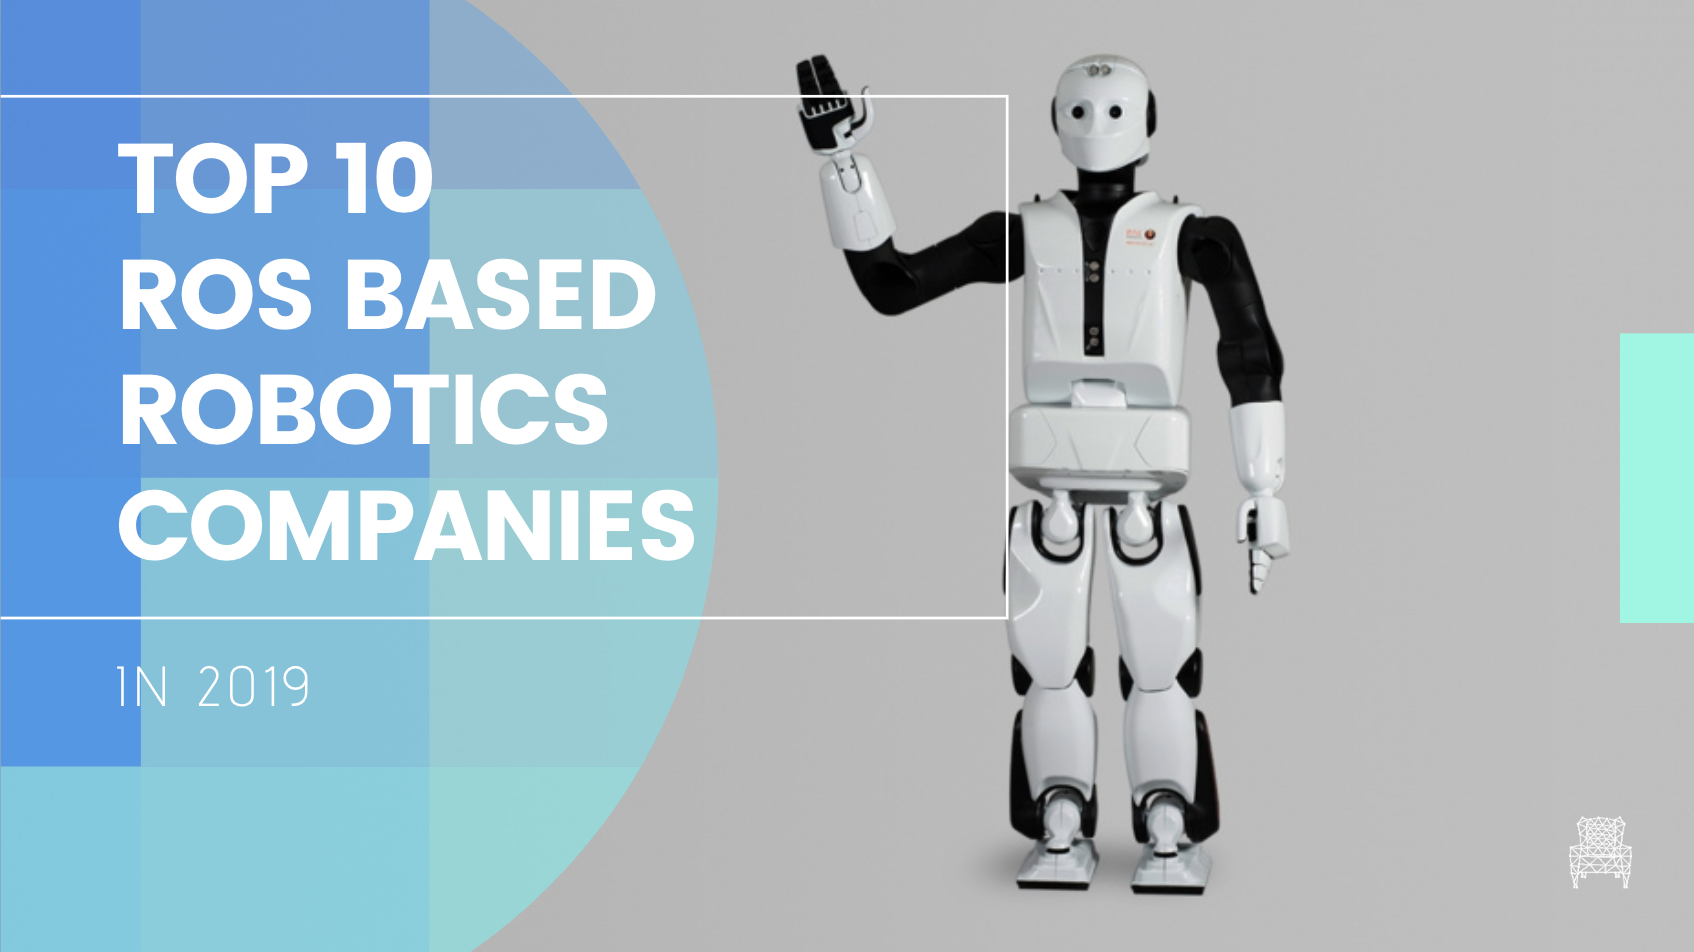 Top 10 ROS Based Robotics Companies in 2019